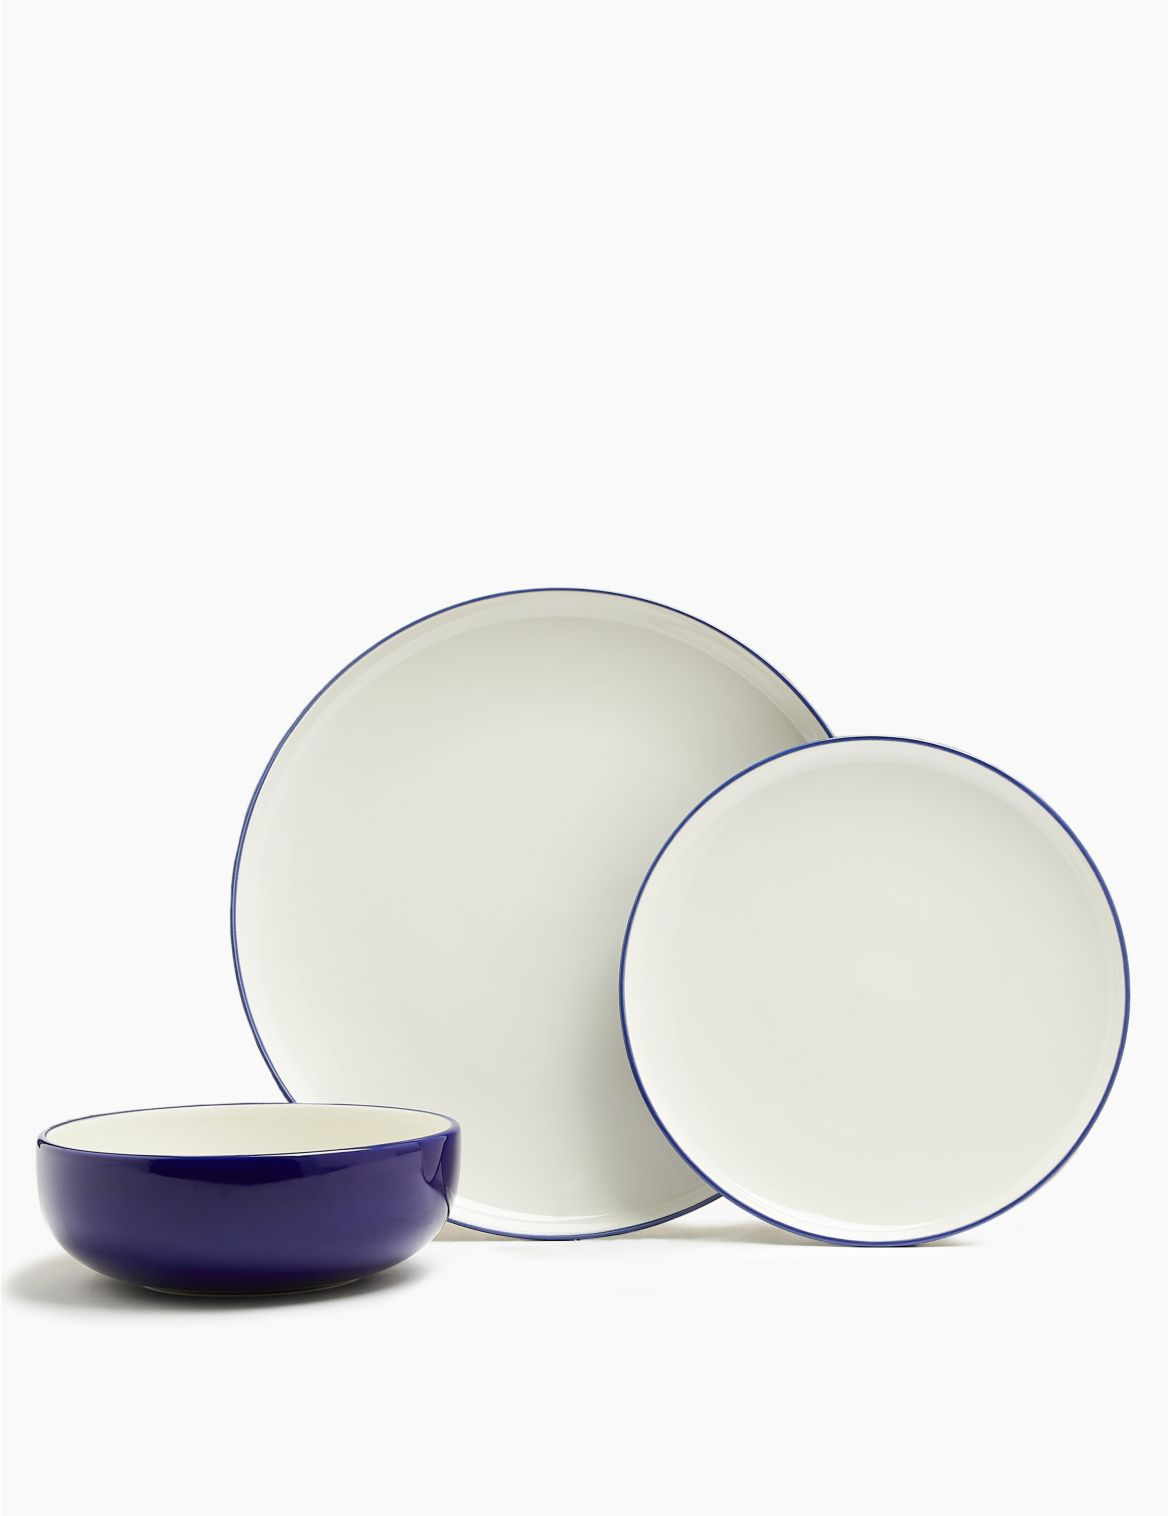 12 Piece Tribeca Dinner Set cobalt